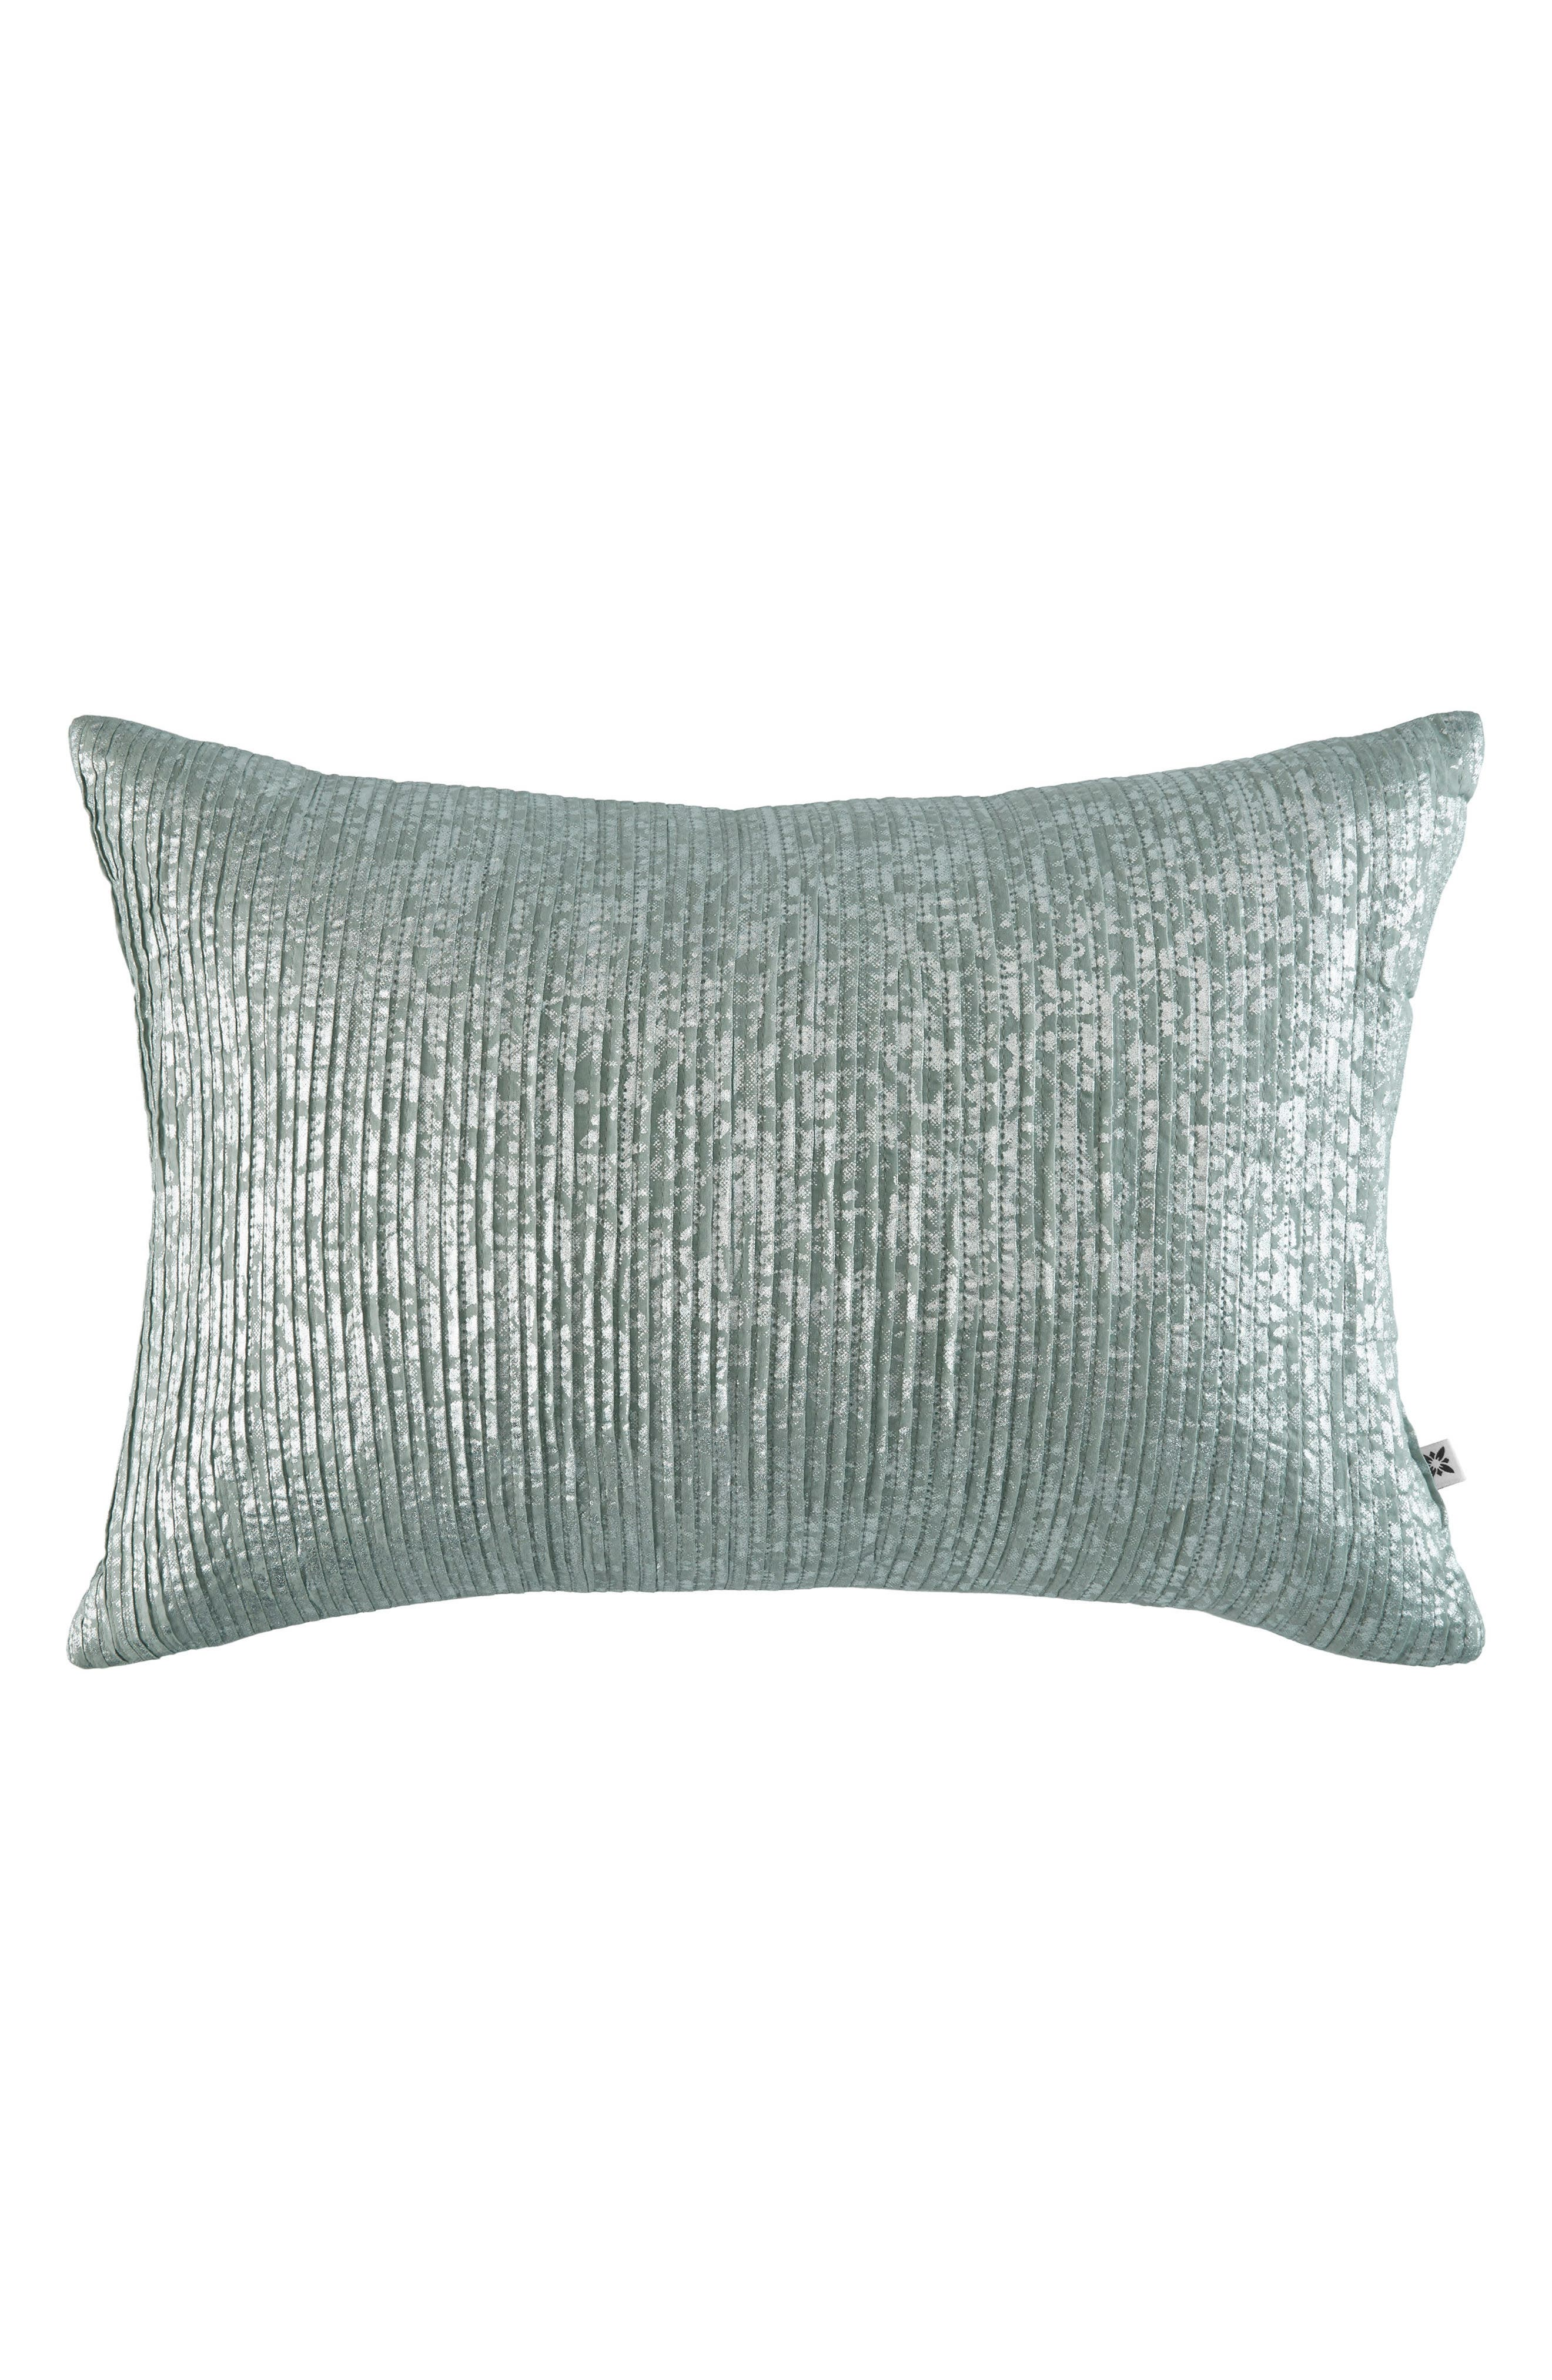 Metallic Ruched Accent Pillow,                         Main,                         color, 499